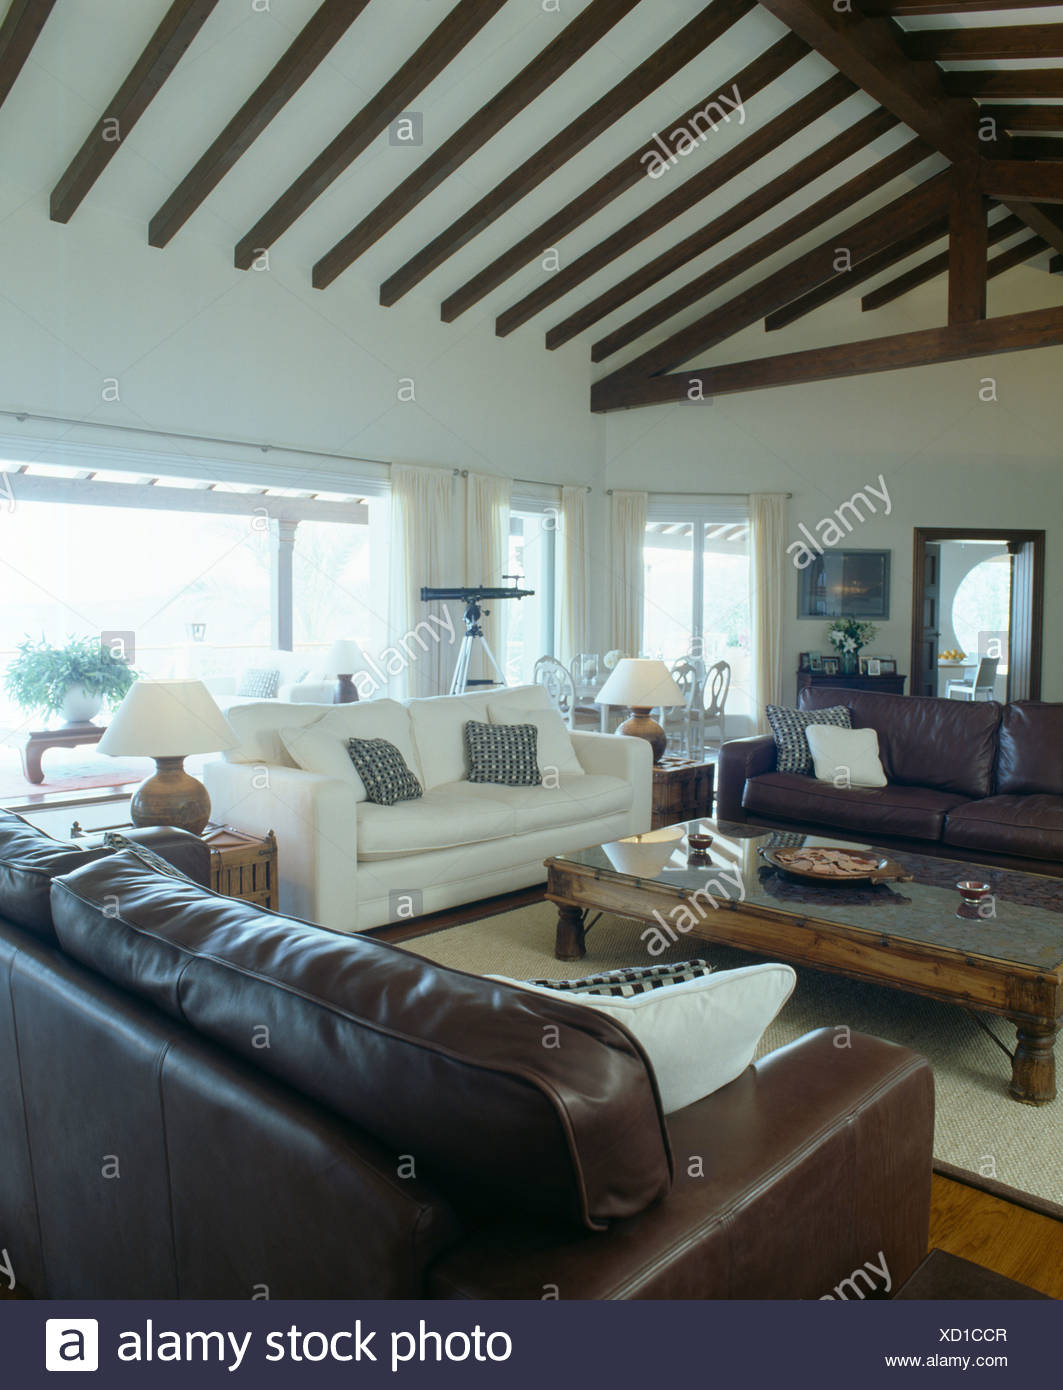 Brown Leather Sofas And White Sofa In Modern Coastal Living